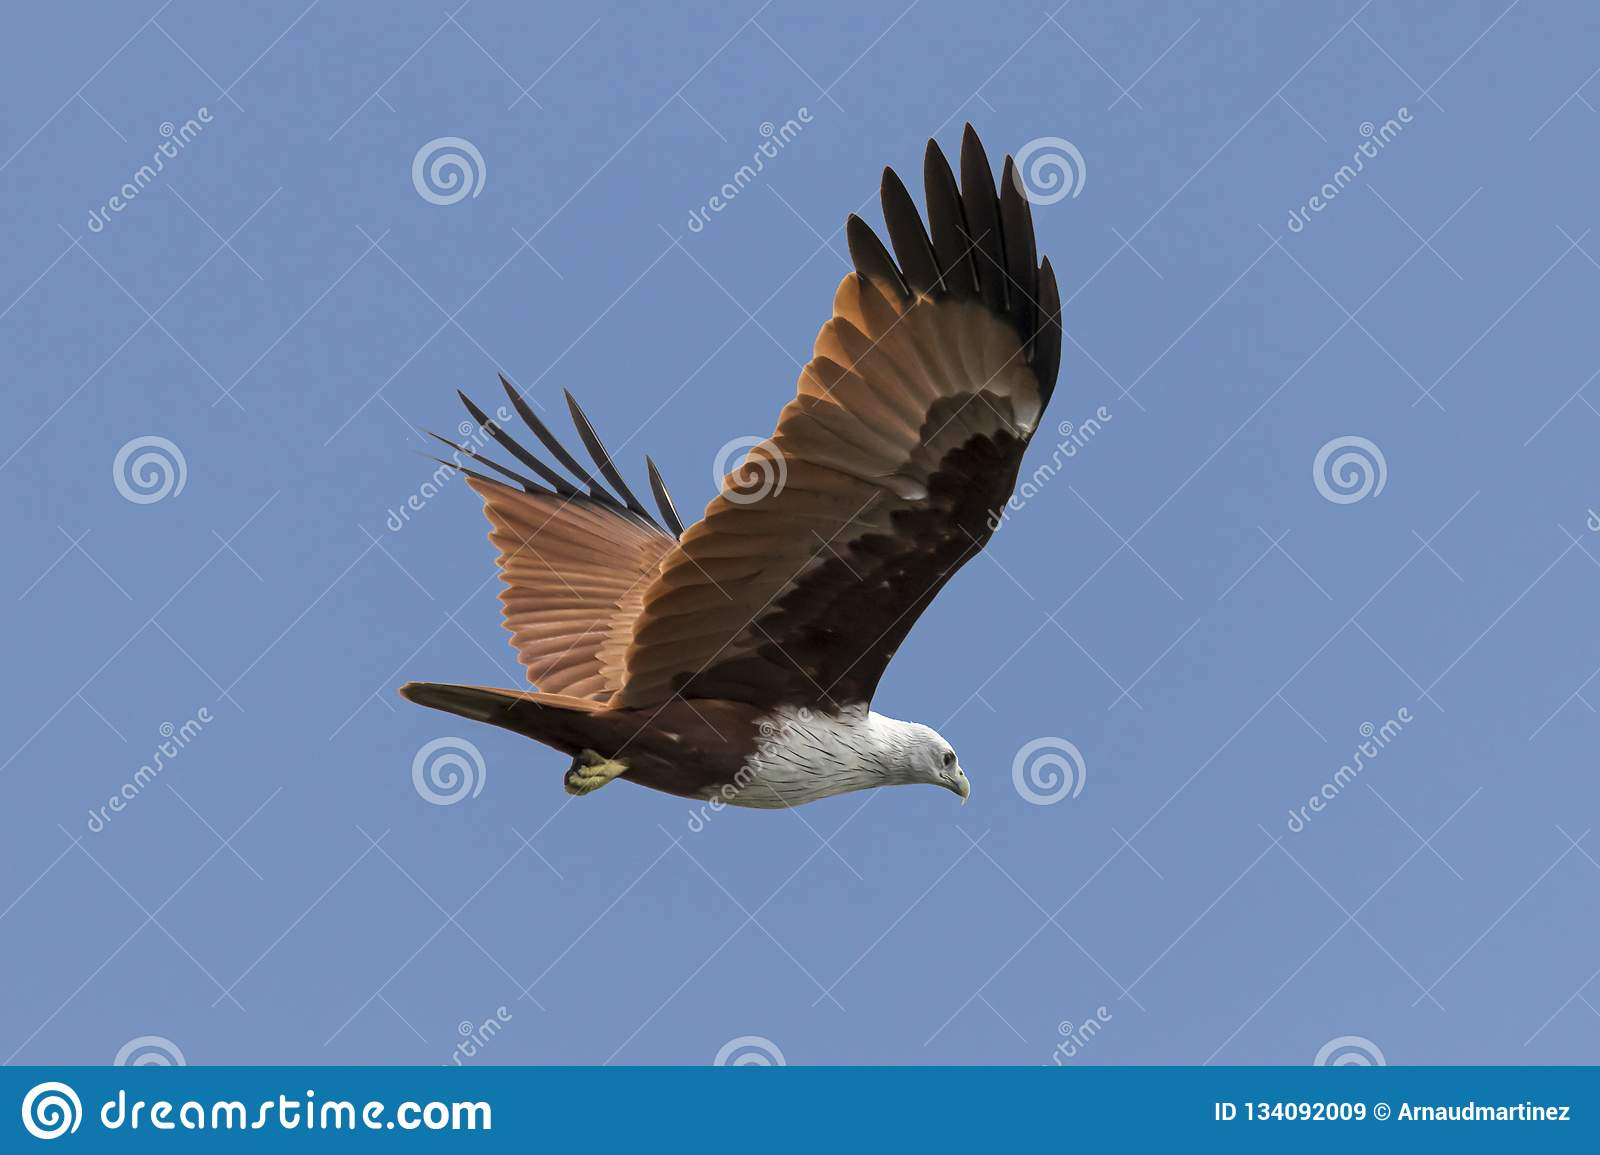 Red backed sea eagle in the sky from Kerala India